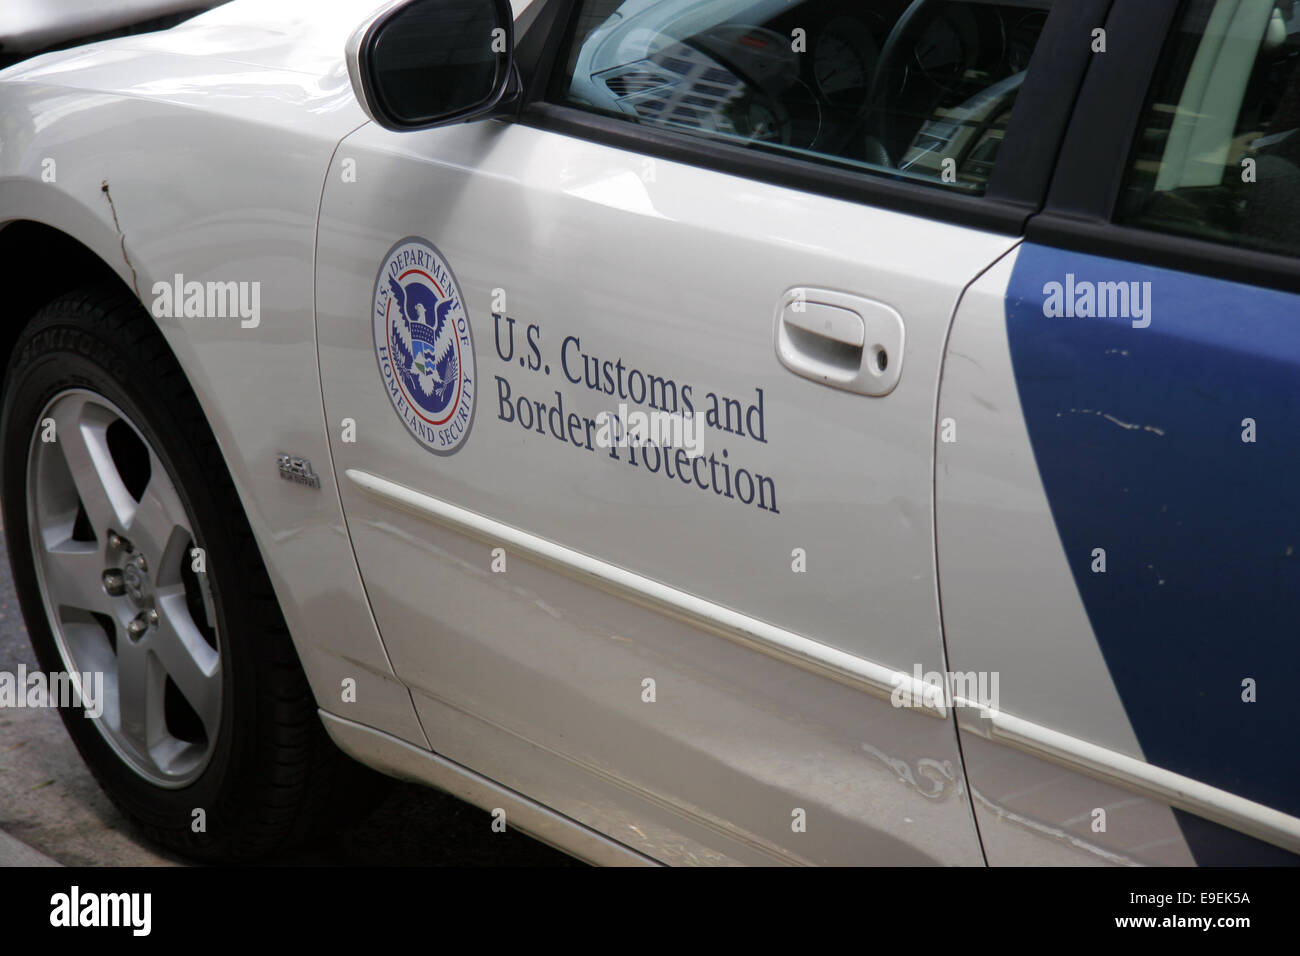 US Customs and Border Protection Department of Homeland Security vehicle. - Stock Image